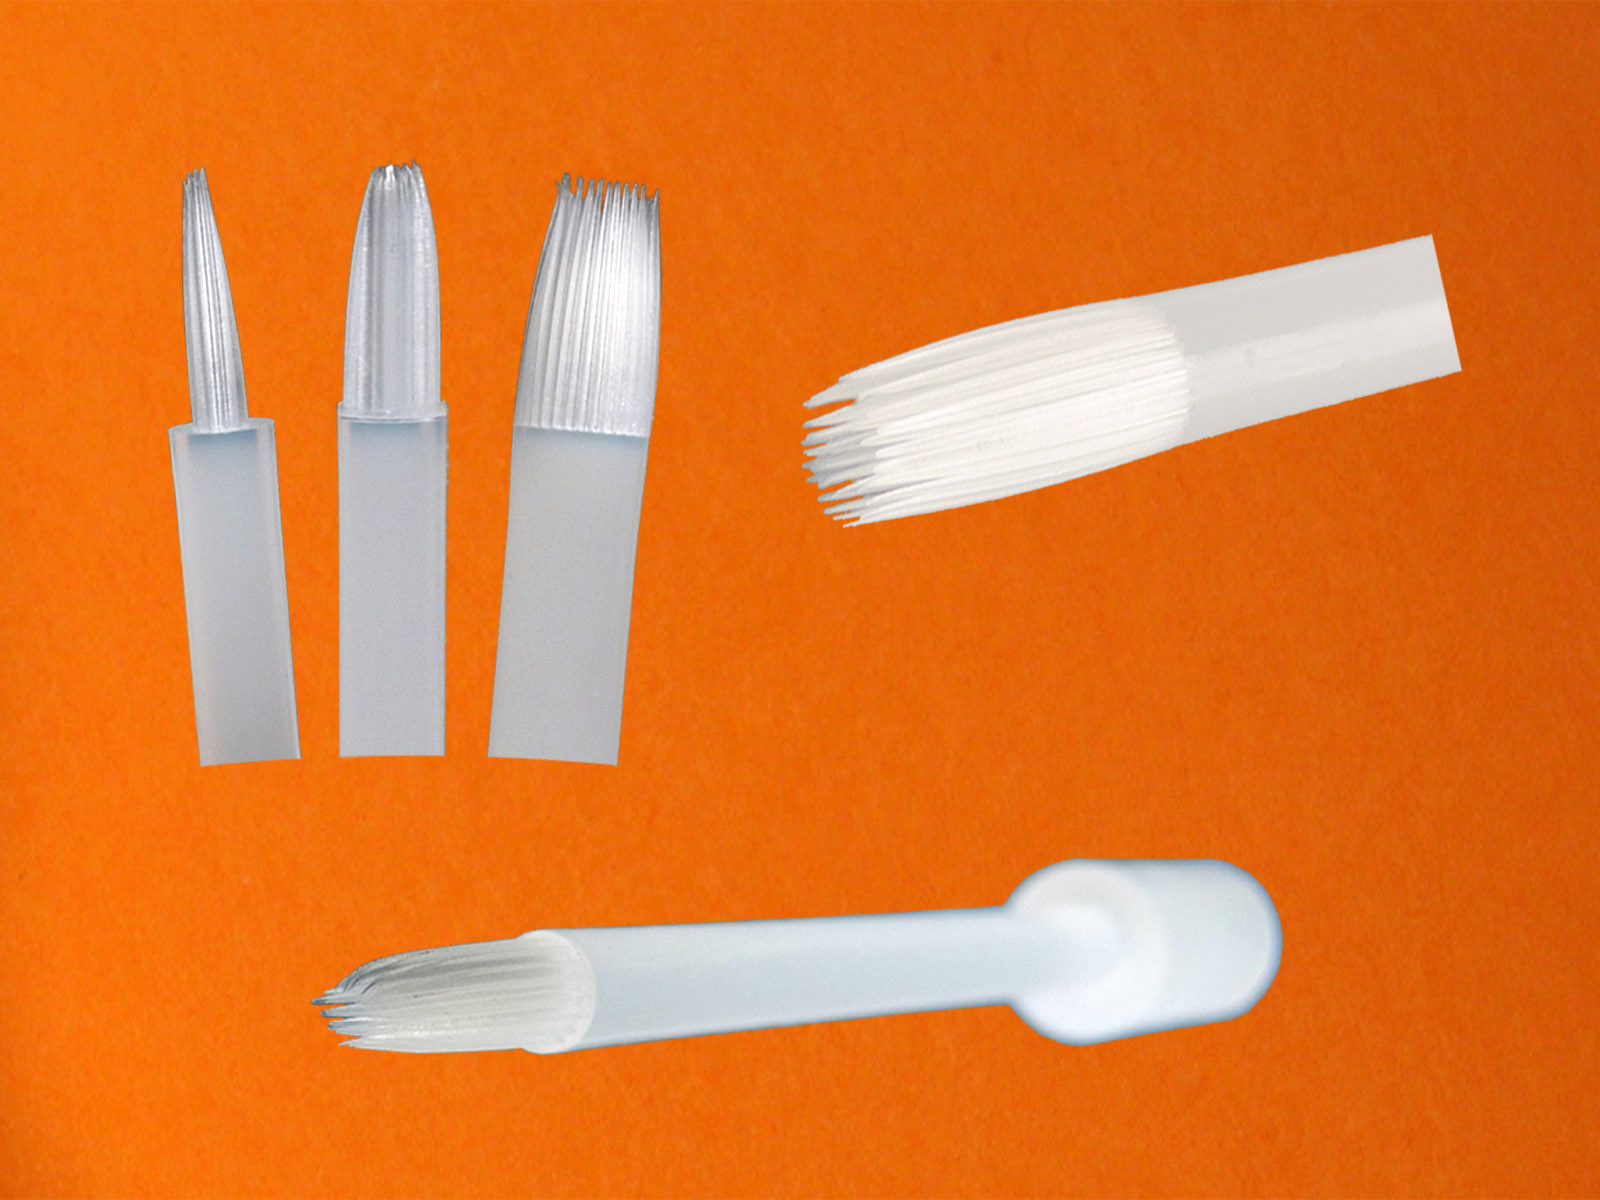 one-piece-brush (Pinsel aus einer Komponente - brush made of one component - ohne Draht - without a wire)